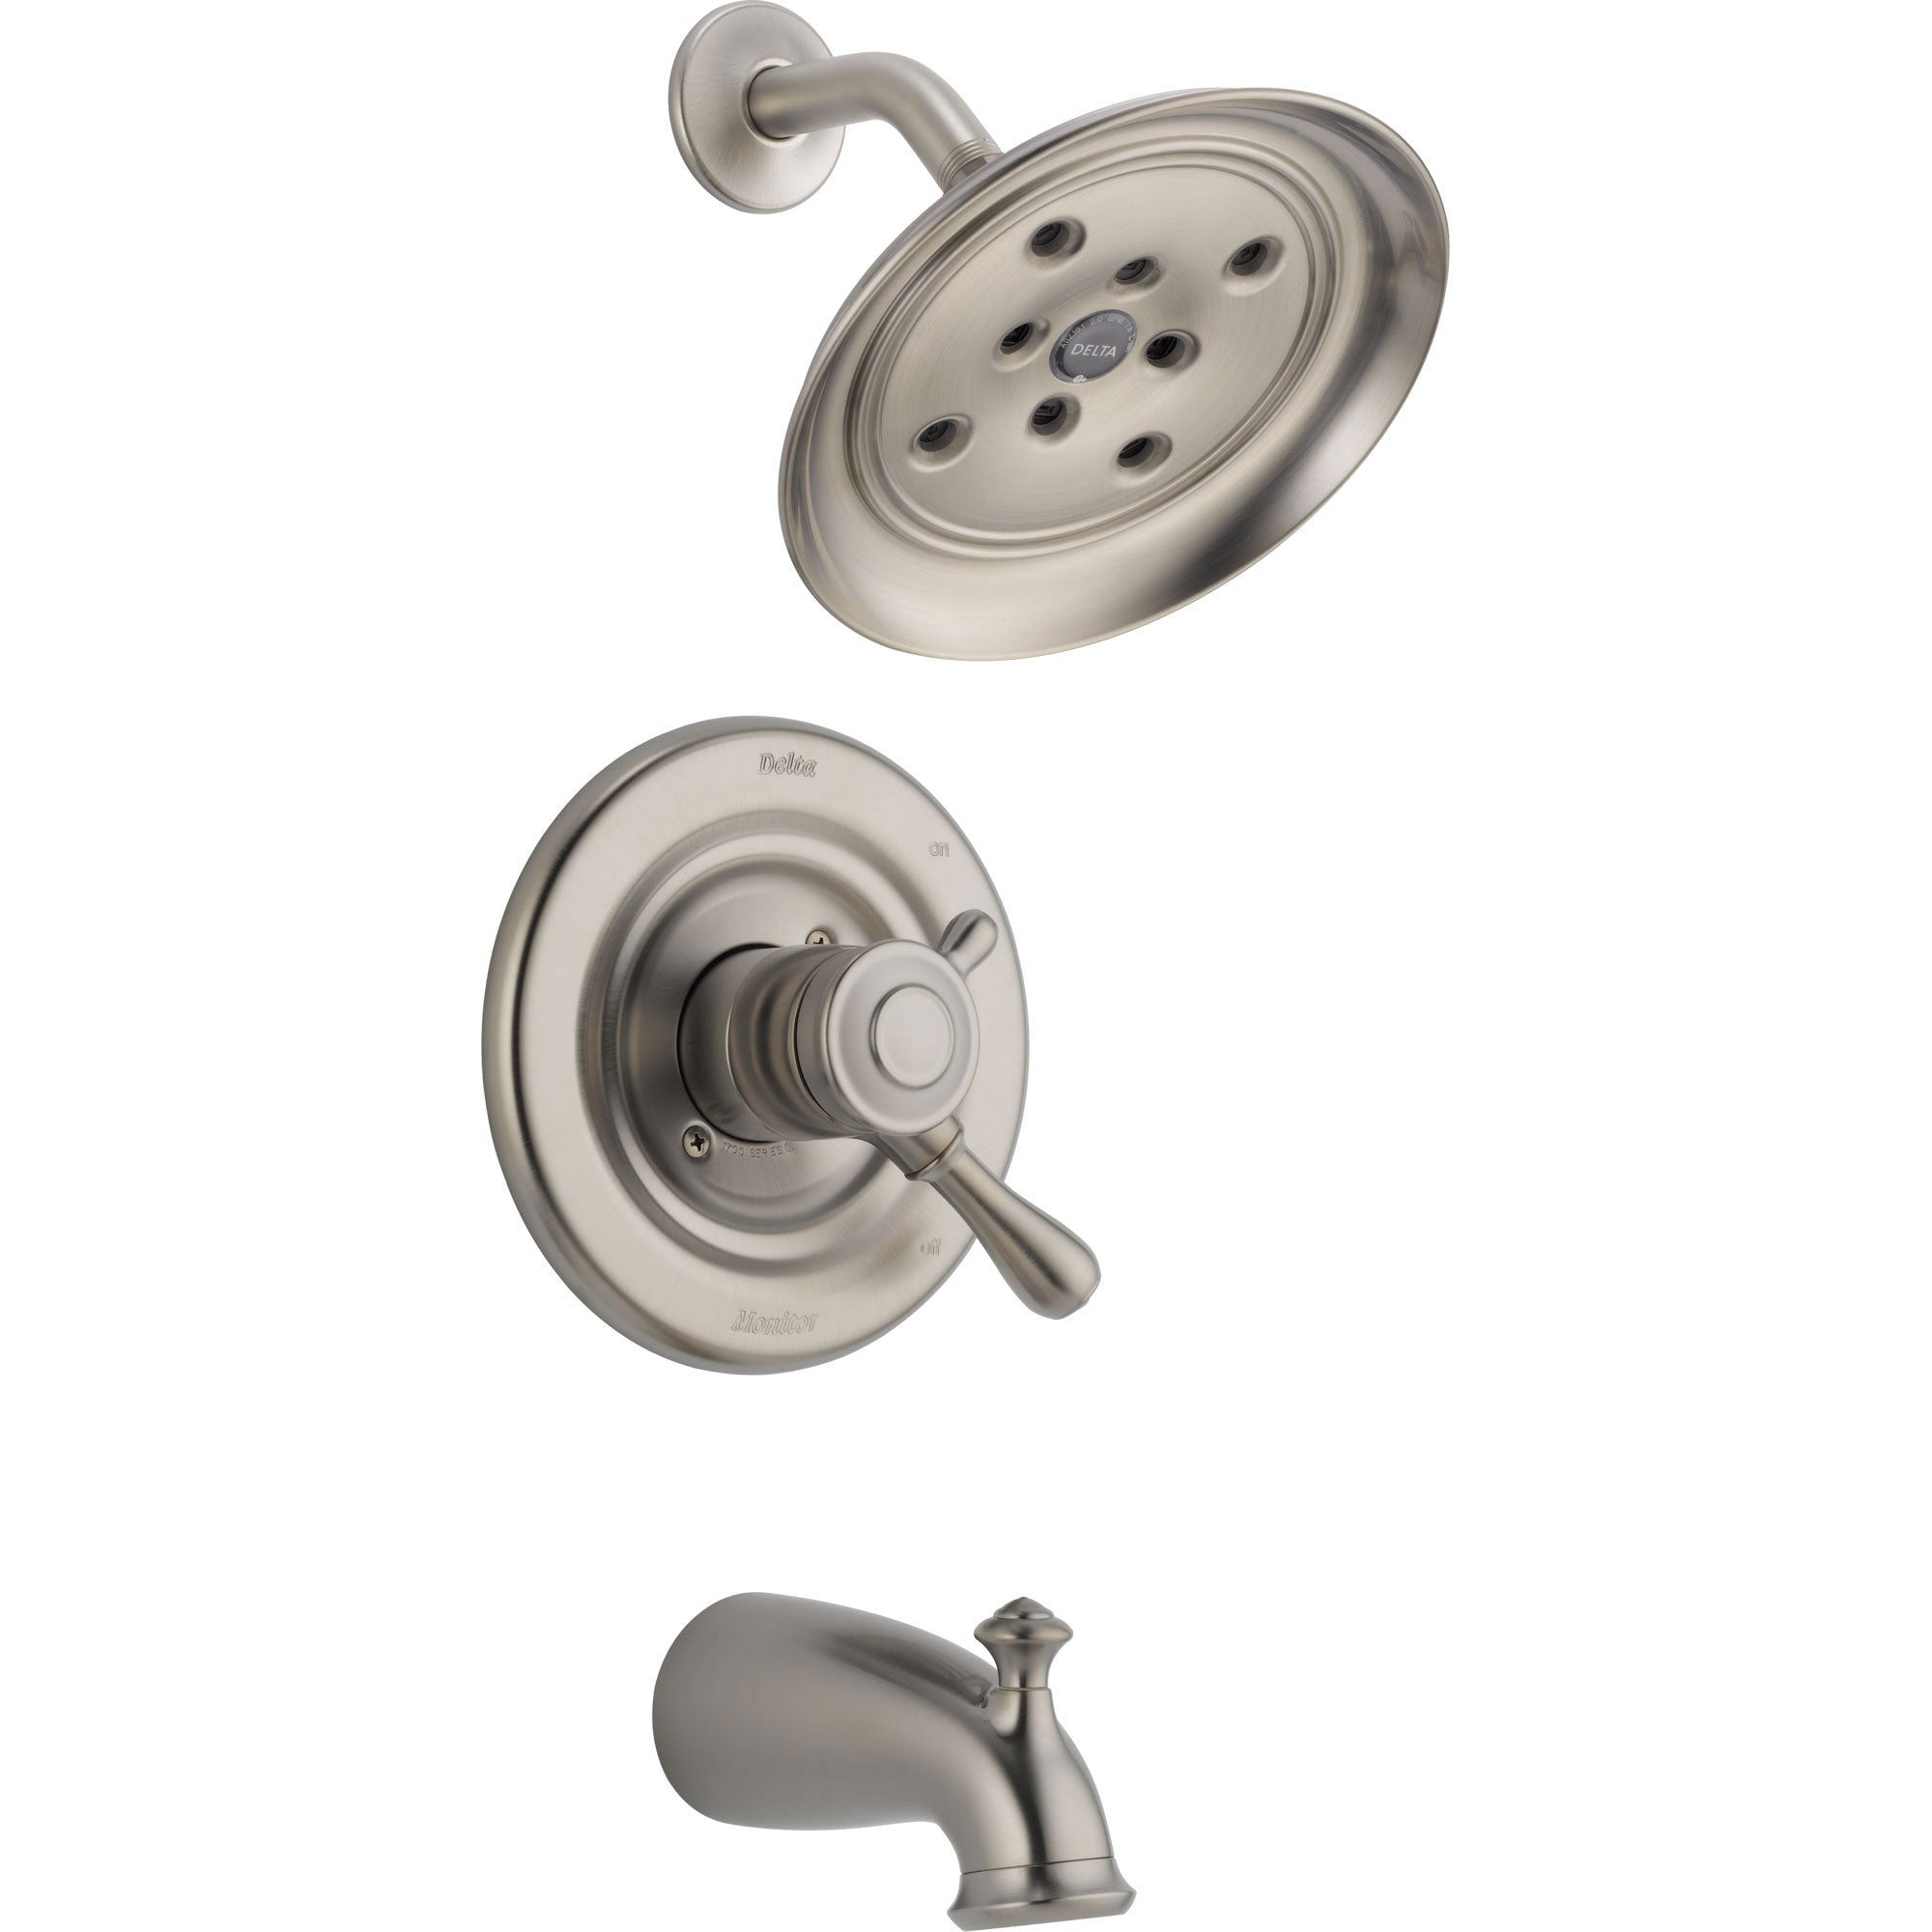 Delta Leland Stainless Steel Dual Control Temp/Volume Tub and Shower Trim 550110